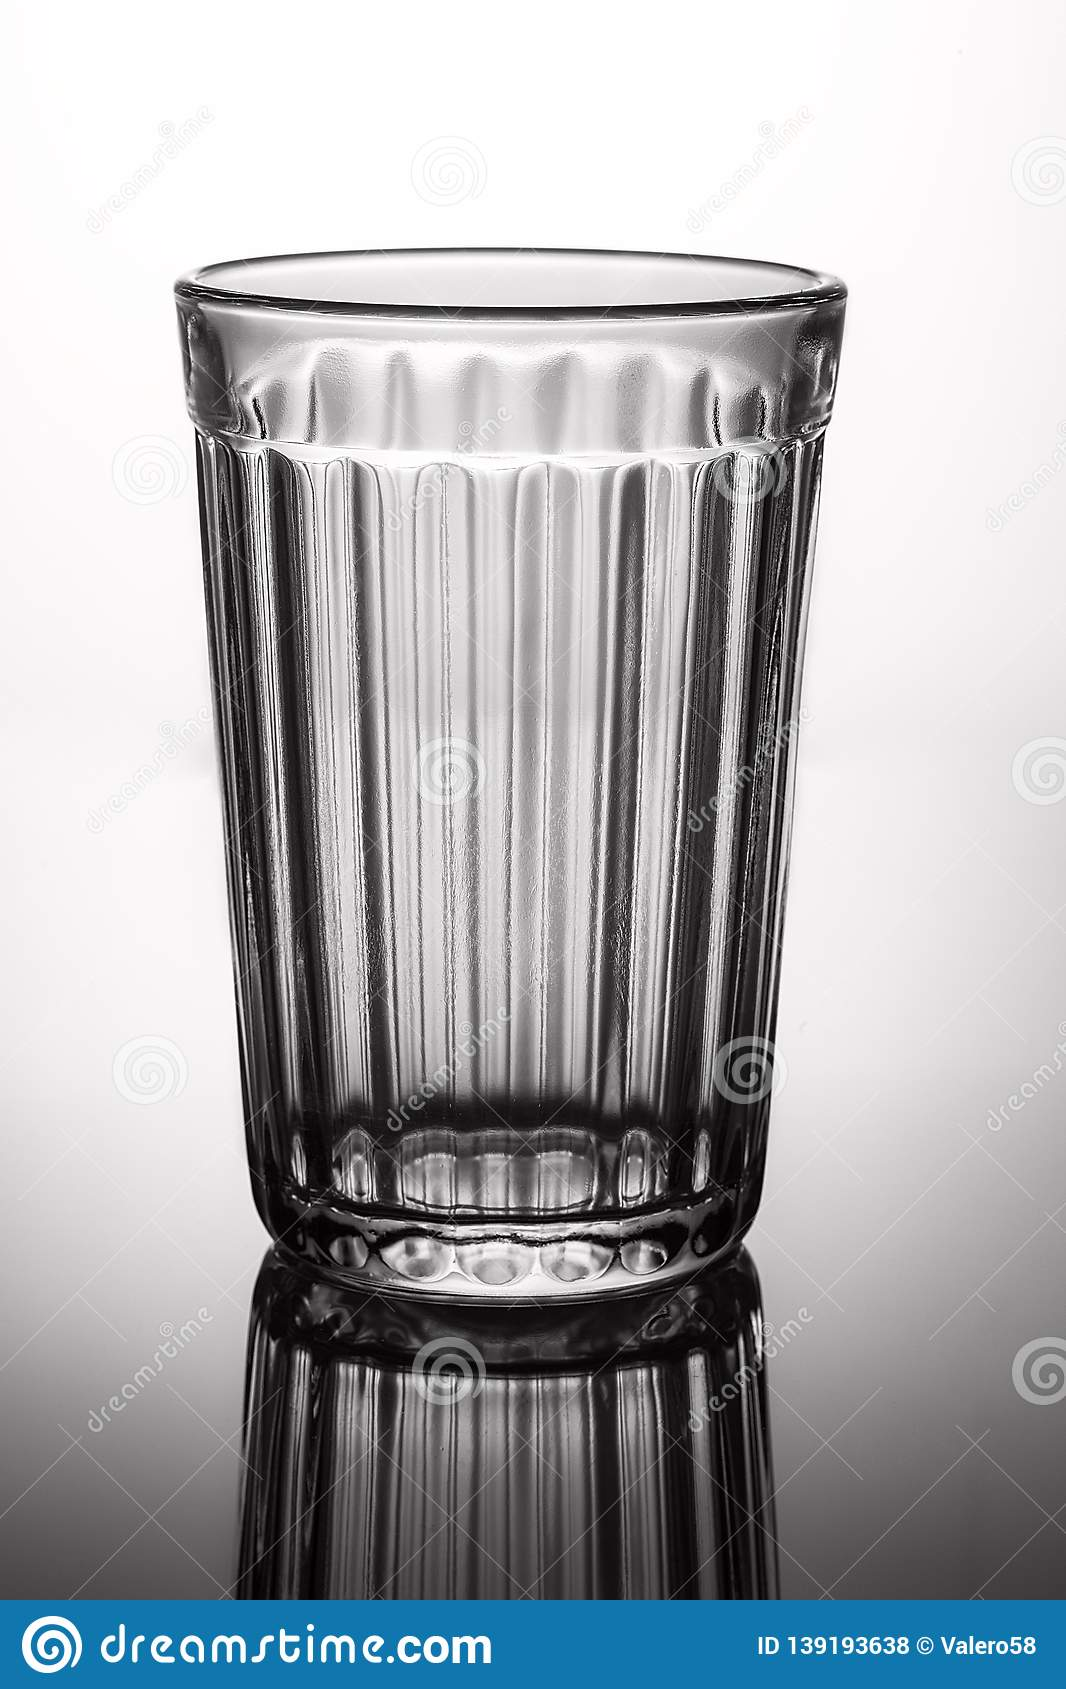 Empty glass on gray background with highlights.